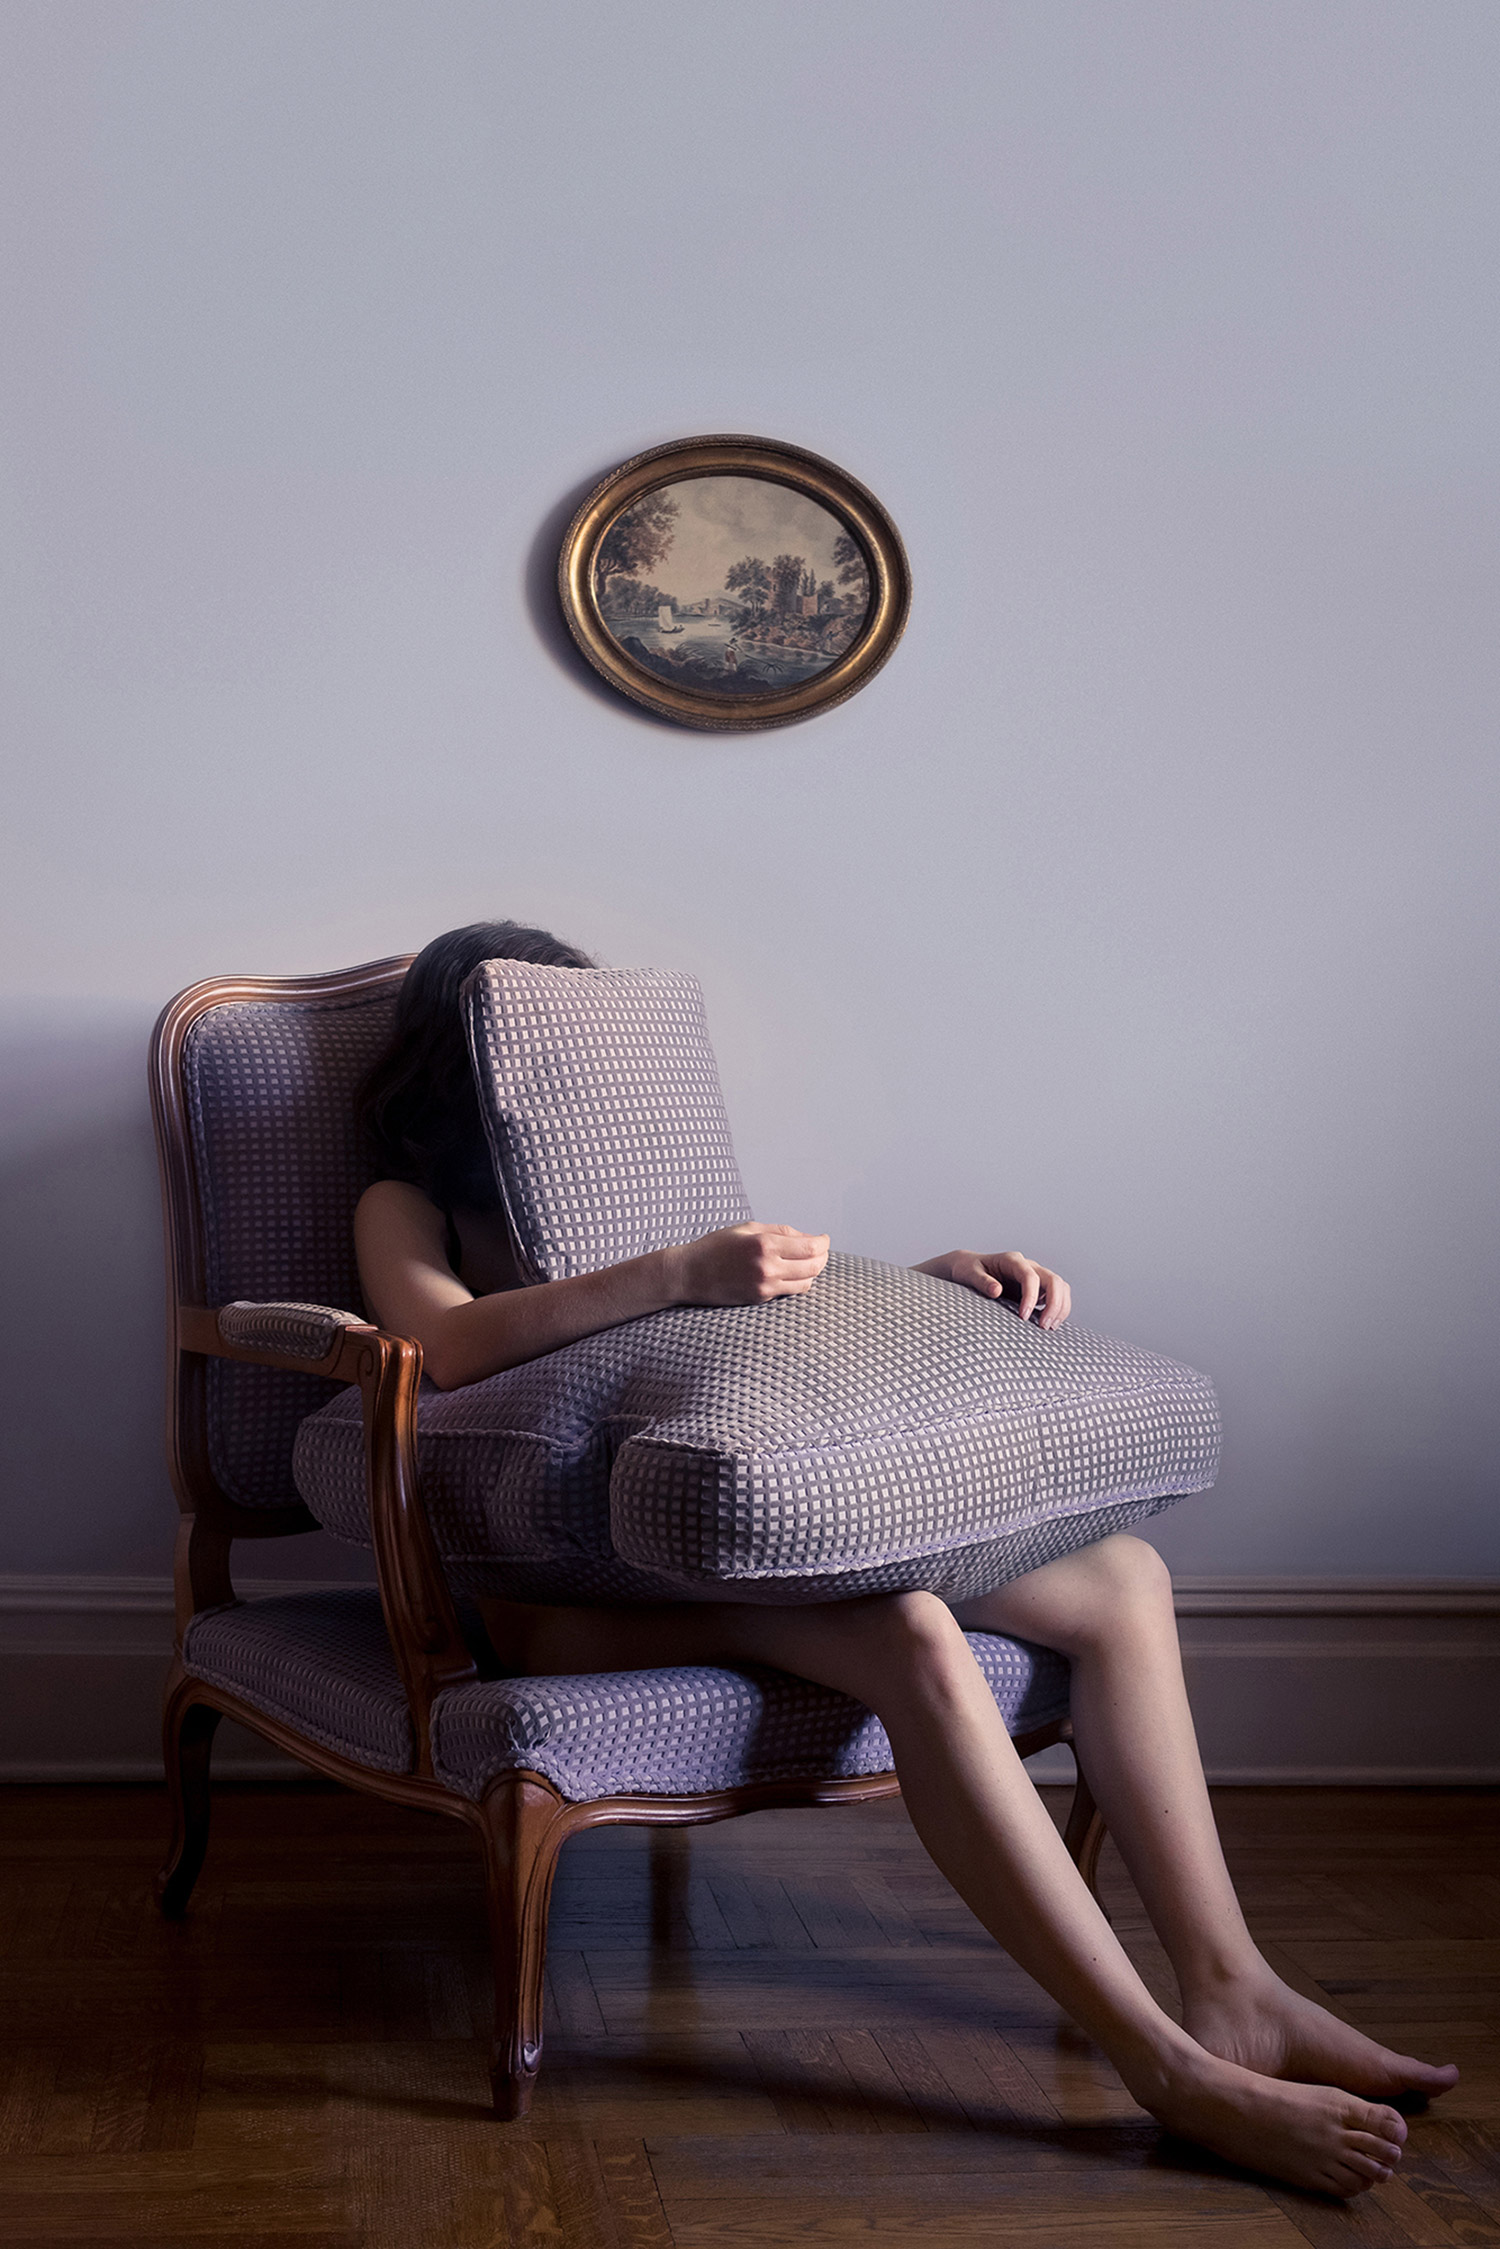 Brooke DiDonato, A House is not a Home - in couch cushions